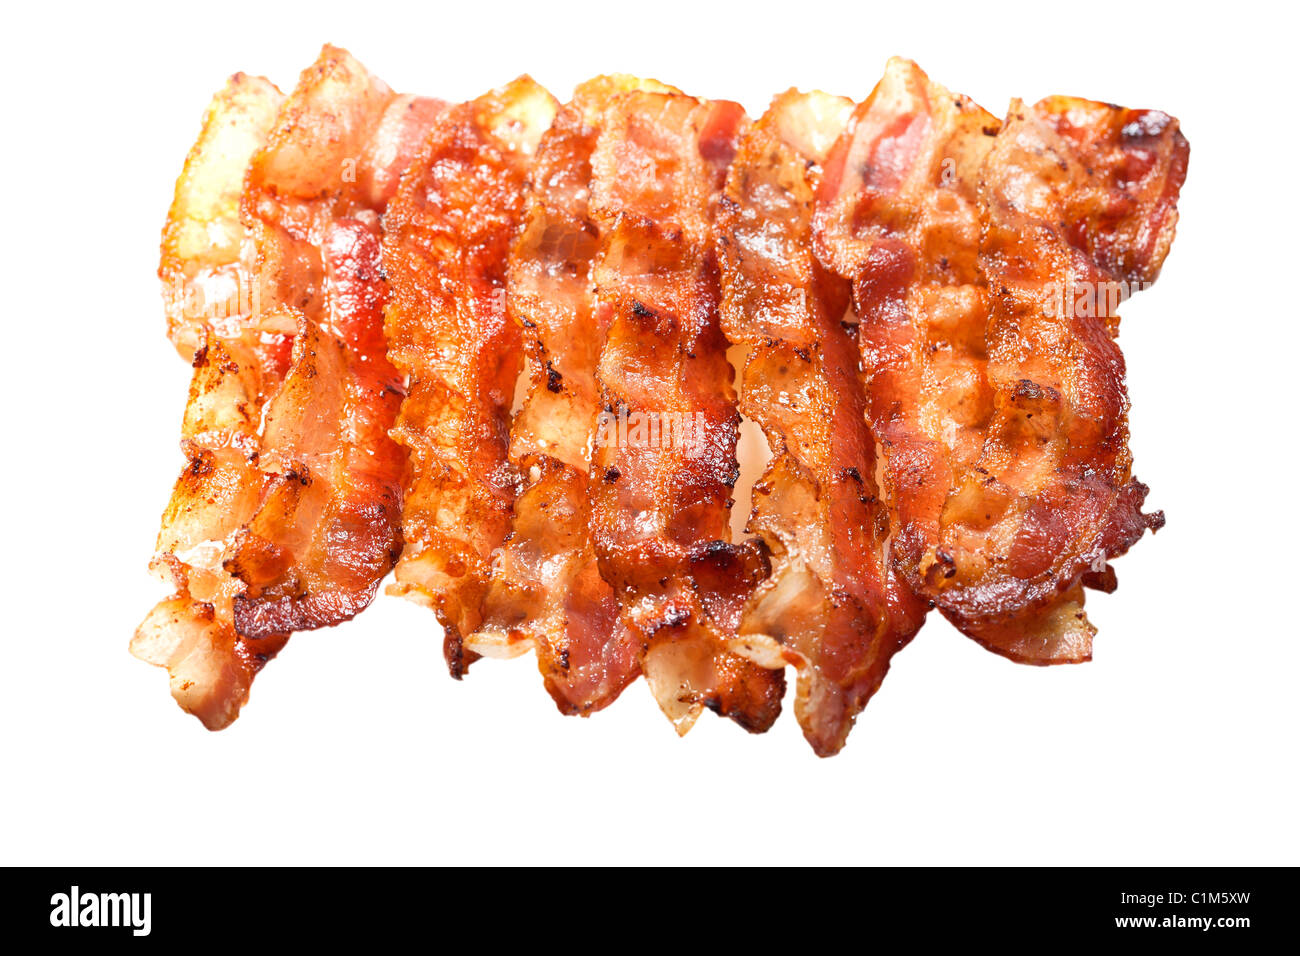 Cooked bacon isolated on white background. Charles Lupica - Stock Image